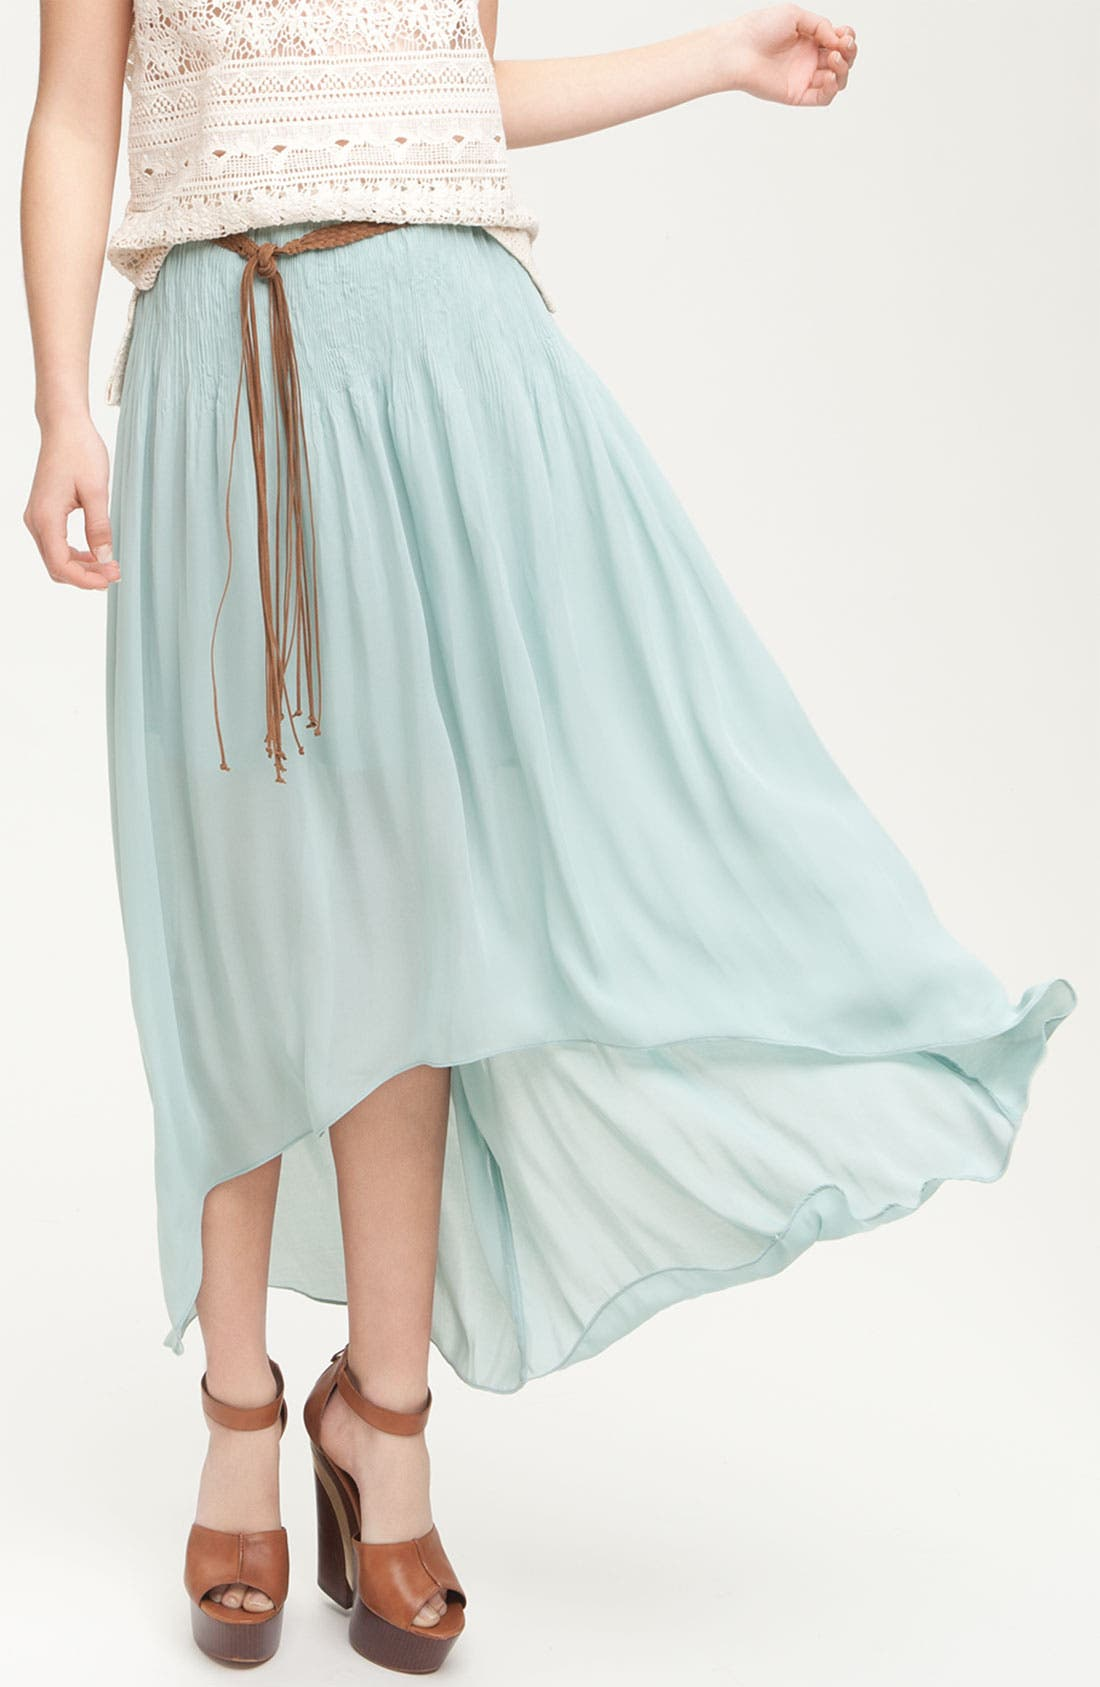 Alternate Image 1 Selected - Sanctuary 'Leotie' Crinkled Asymmetric Maxi Skirt